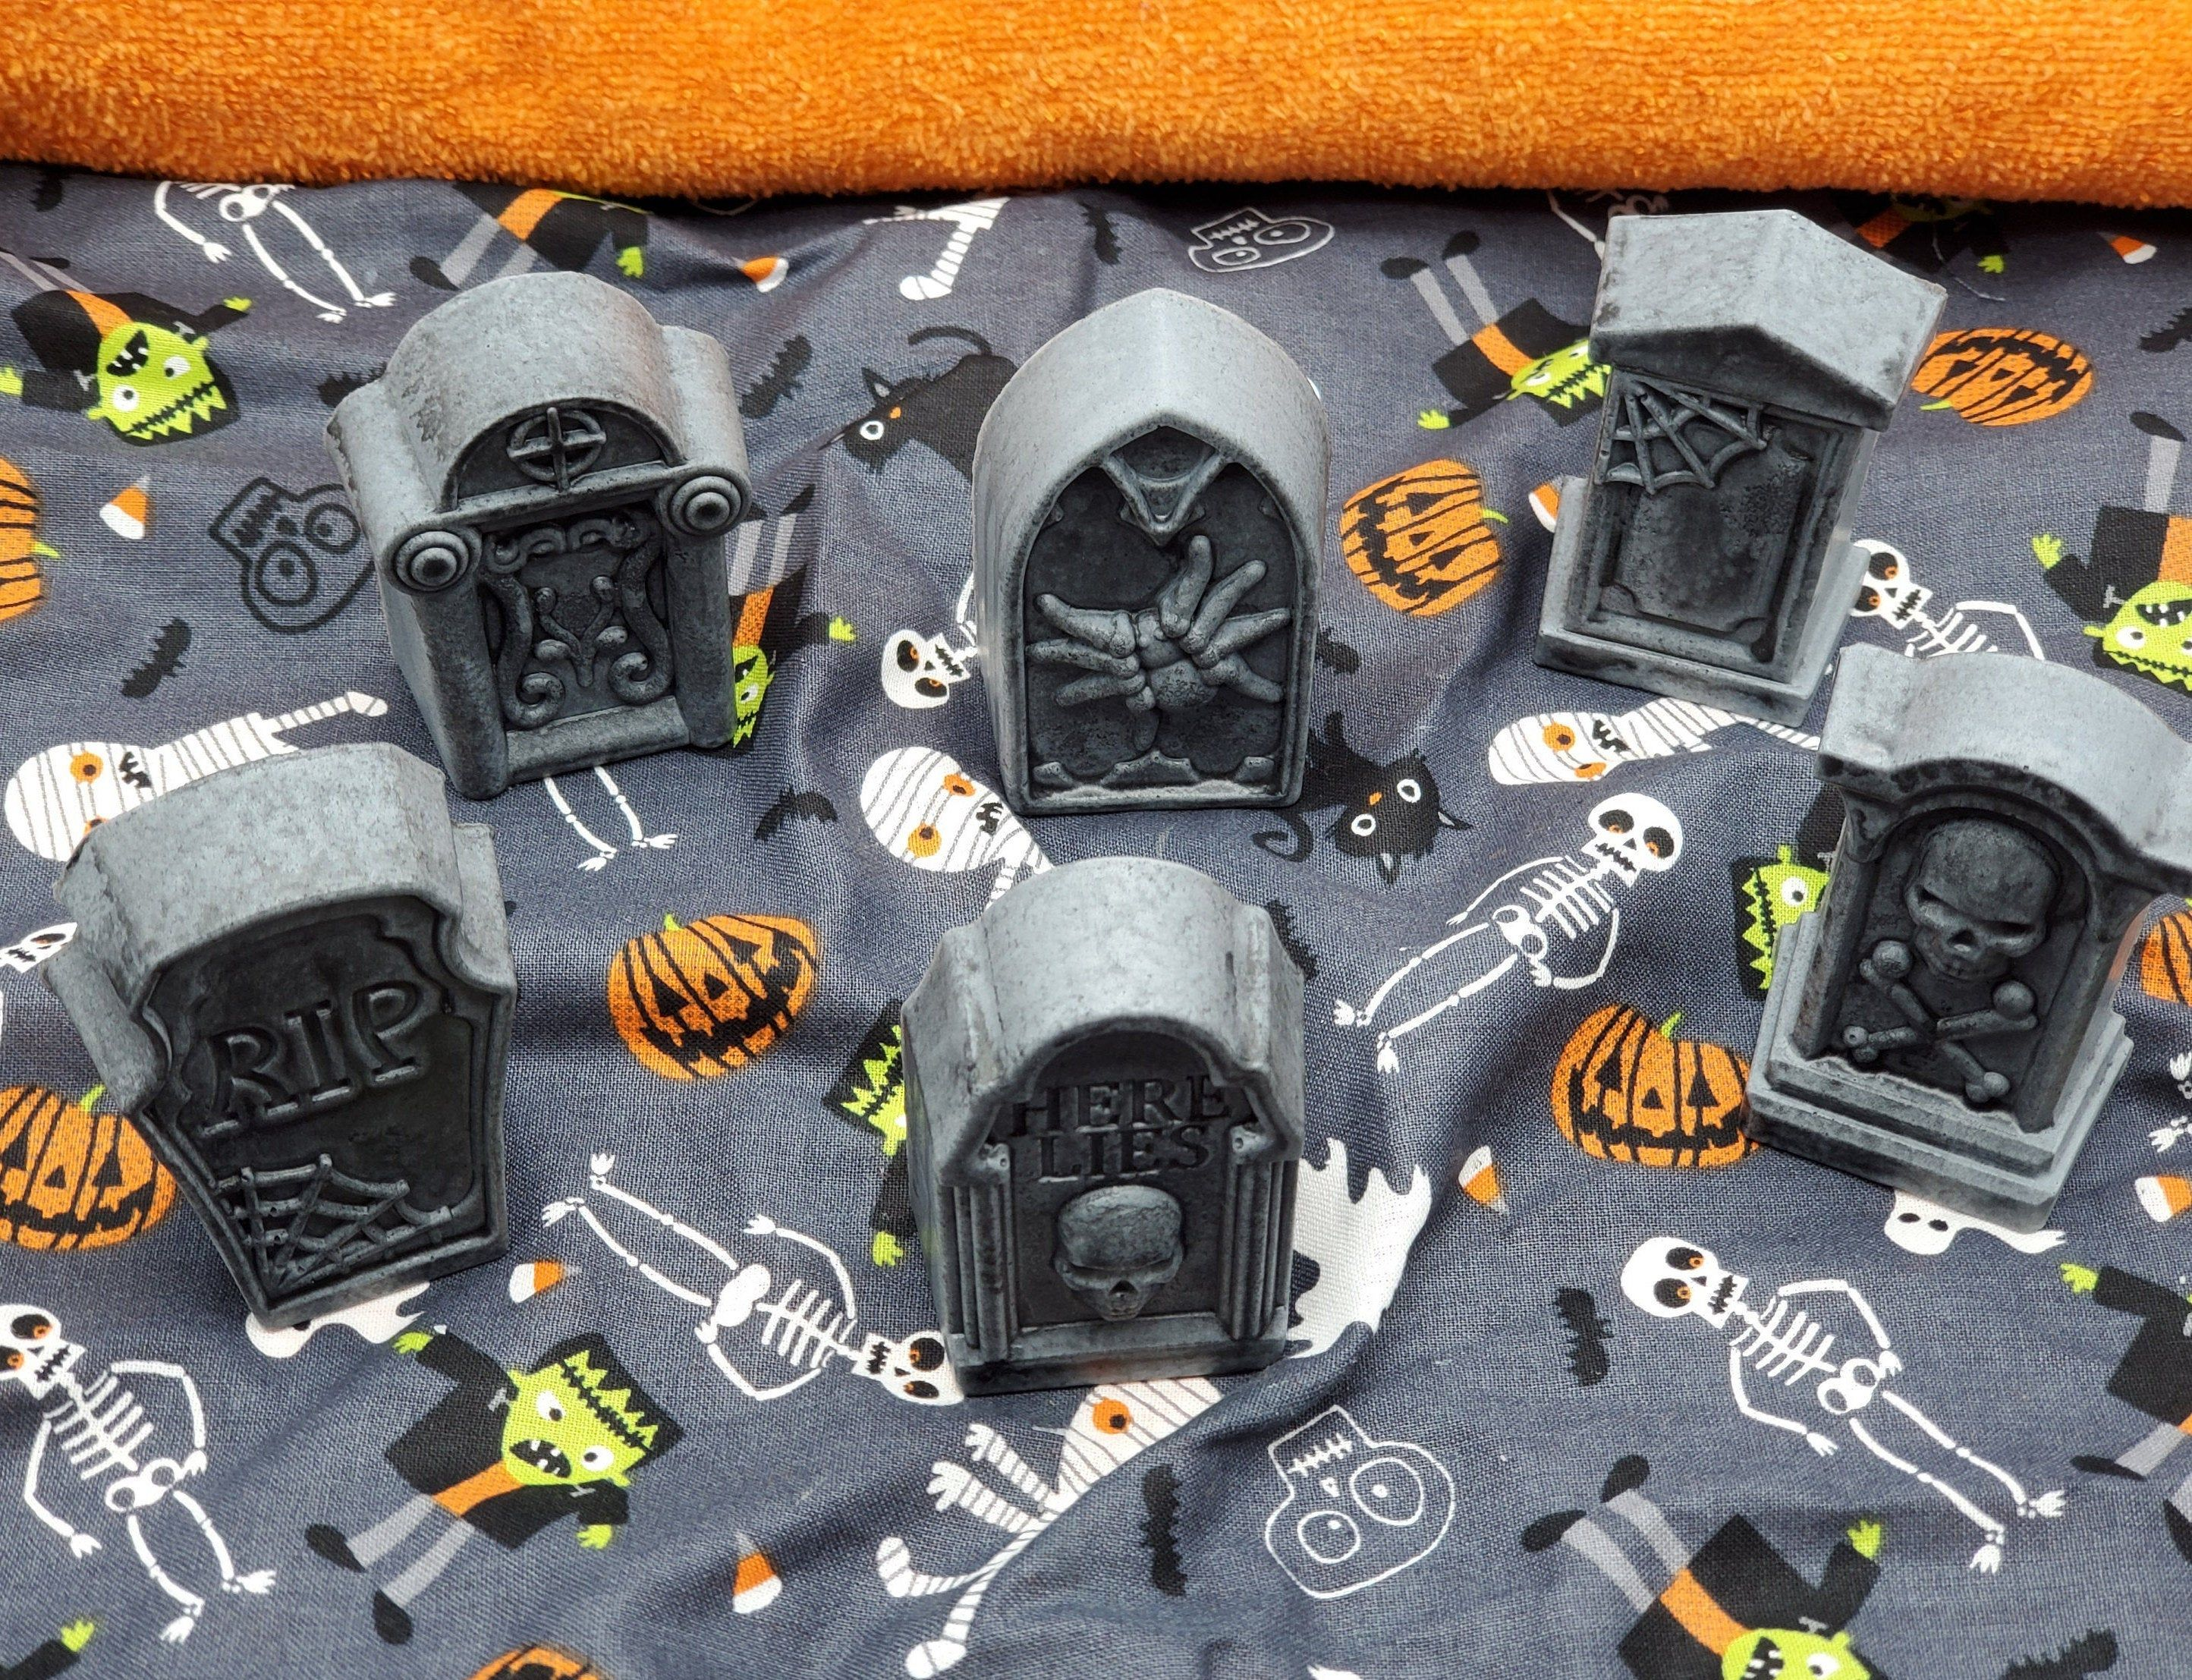 Sls Halloween Party 2020 Spooky Tombstone Soaps Set of 6 Choose your scent Unique   Etsy in